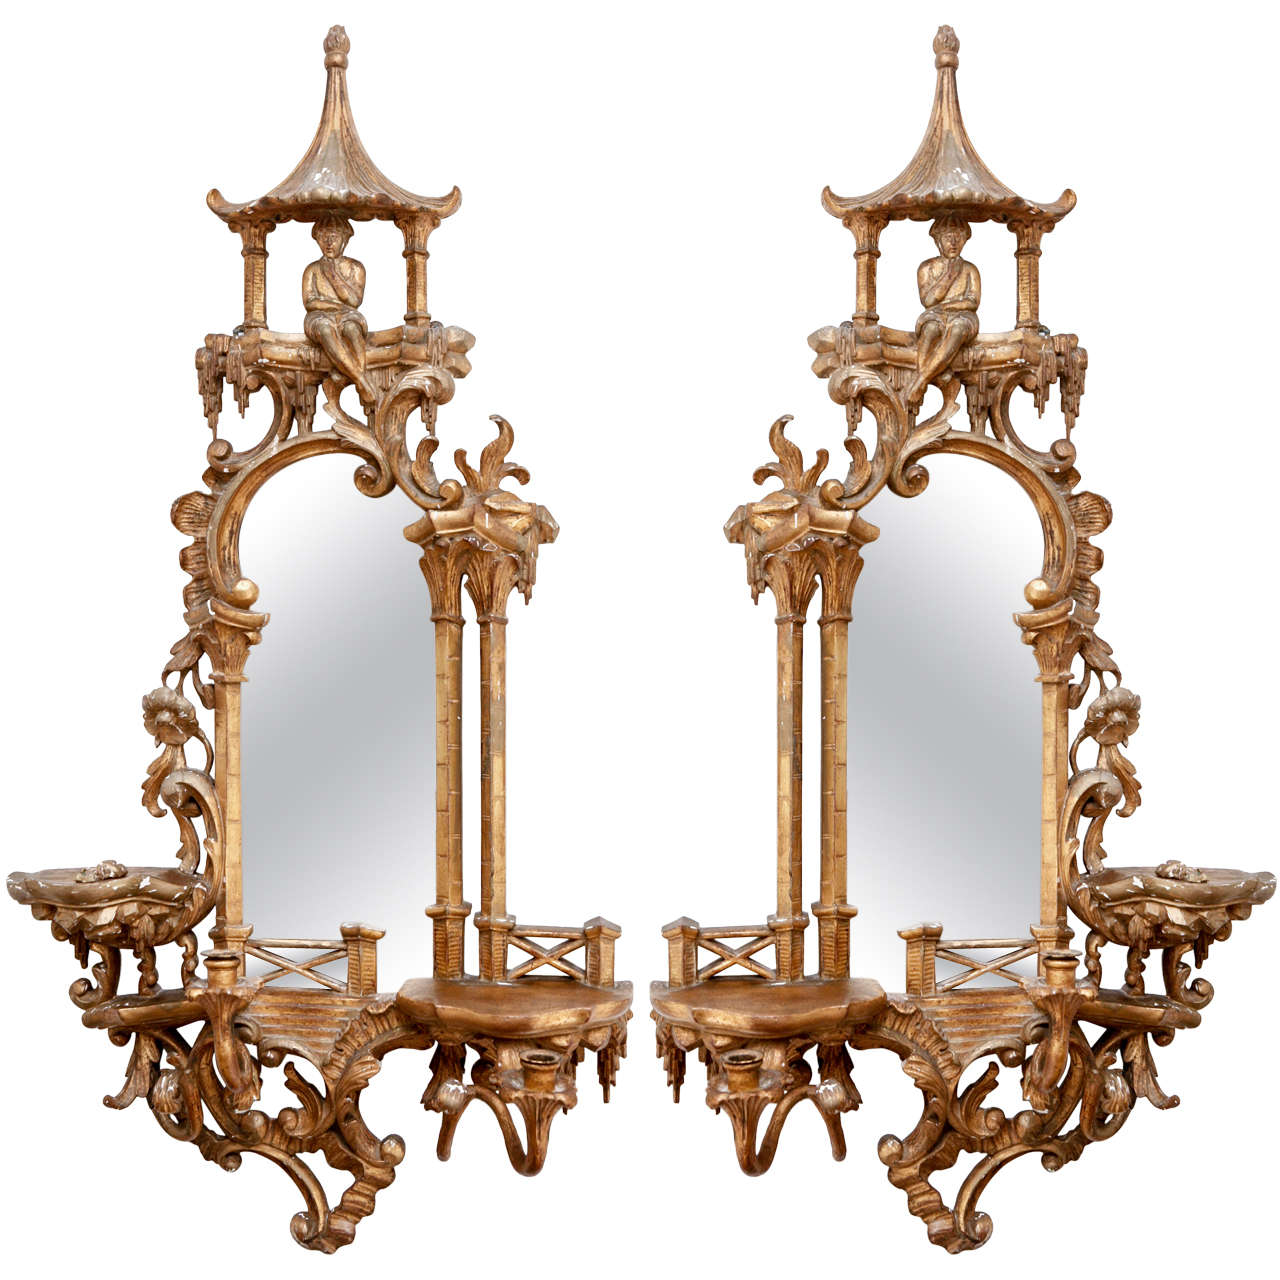 Pair of 19th c chinoiserie mirrors for sale at 1stdibs for Mirrors for sale